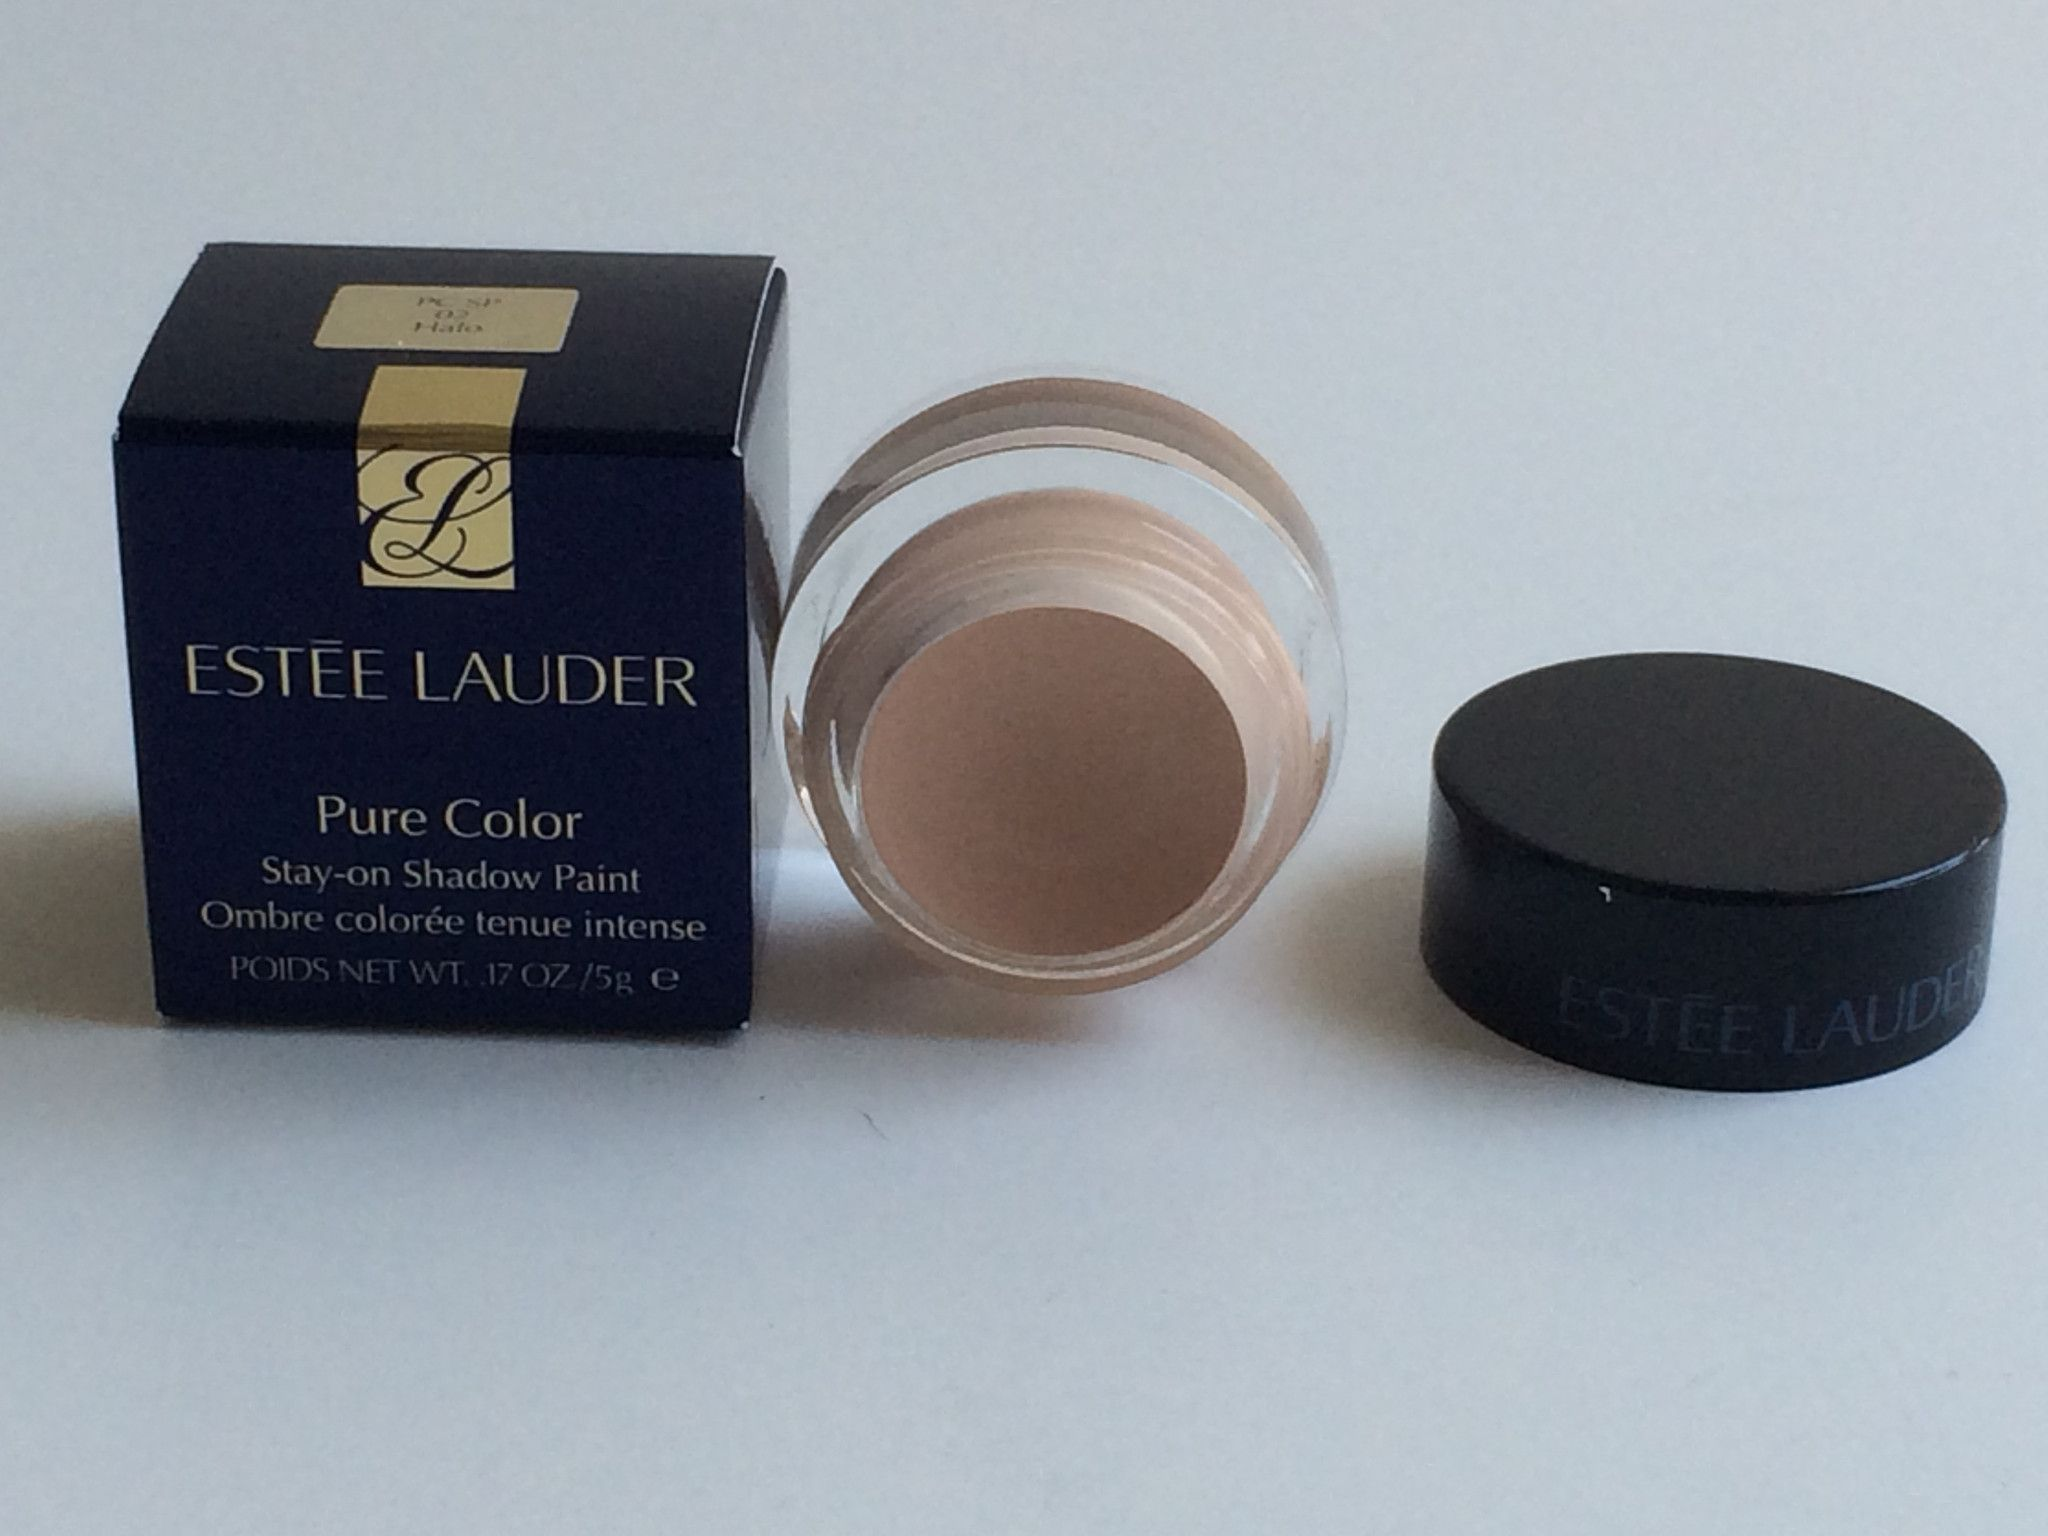 Pure Color Stay-on Shadow Paint